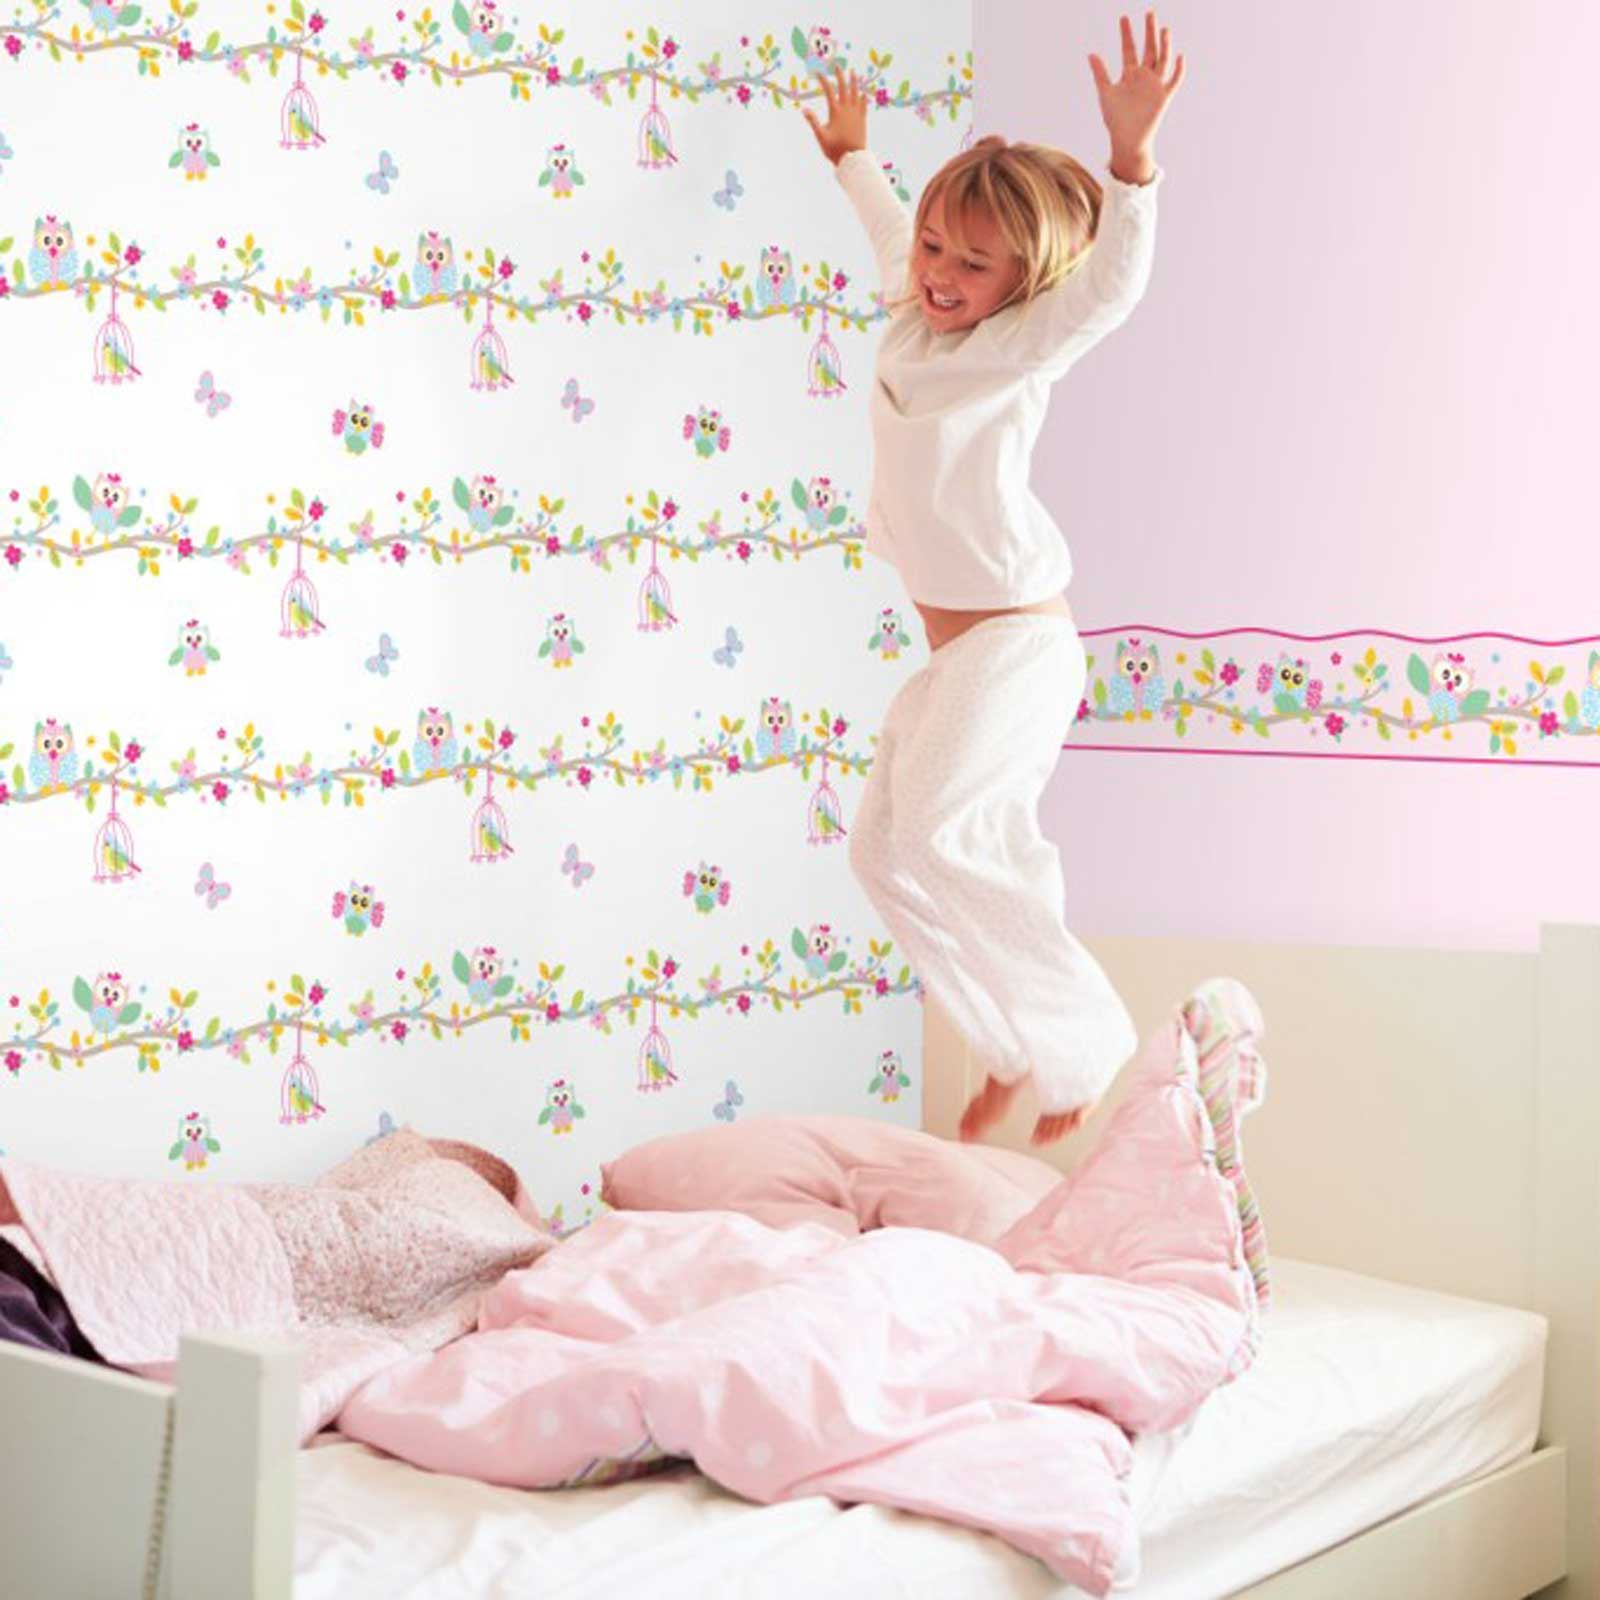 GIRLS CHIC WALLPAPER KIDS BEDROOM FEATURE WALL DECOR. GIRLS CHIC WALLPAPER KIDS BEDROOM FEATURE WALL DECOR VARIOUS